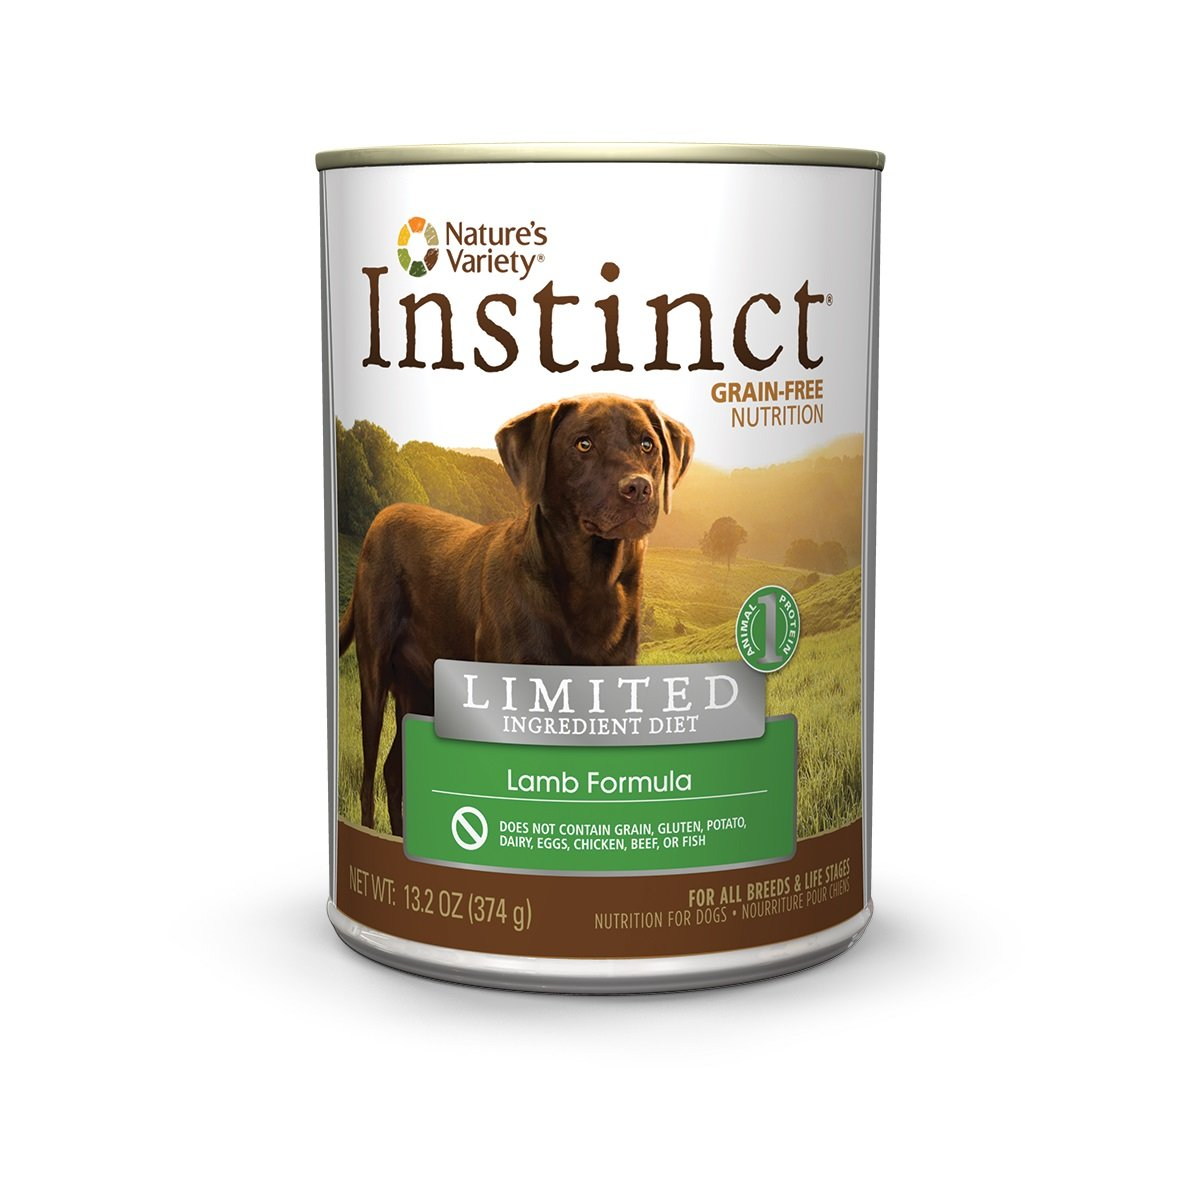 Nature'S Variety Instinct Limited Ingredient Diet Grain Free Lamb Formula Natural Wet Canned Dog Food By, 13.2 Oz. Cans (Case Of 12) by Nature's Variety